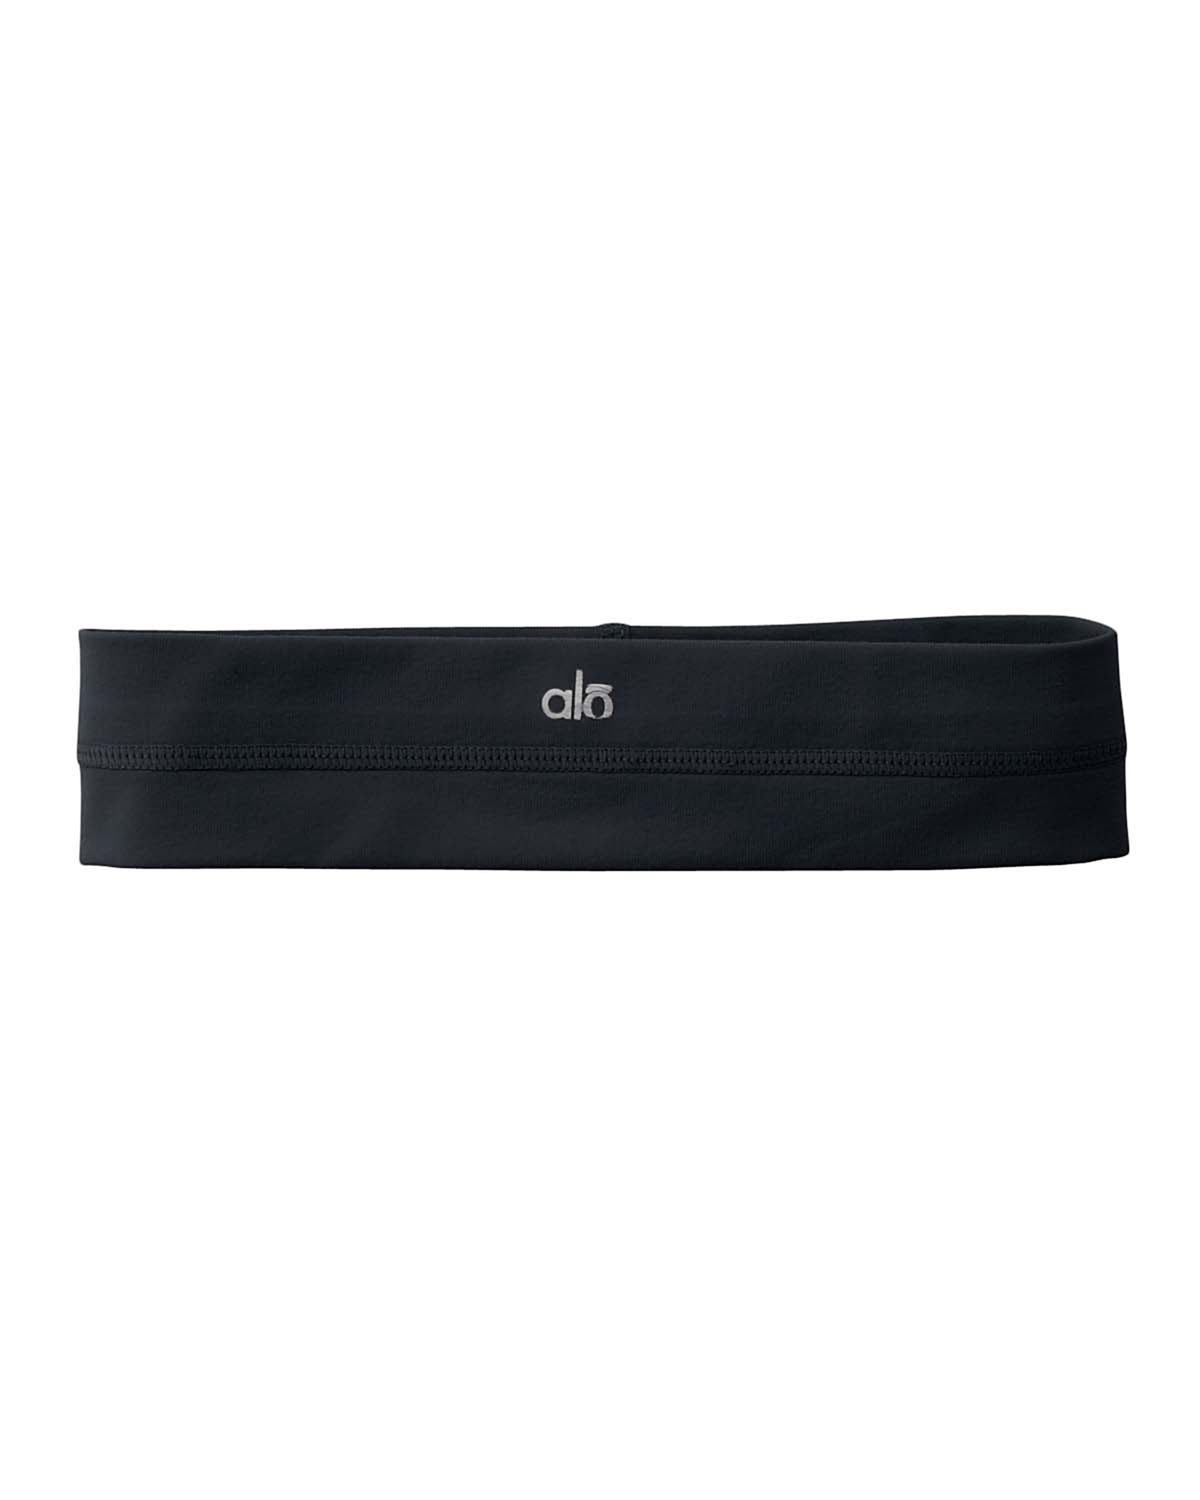 alo - Ladies' Headband